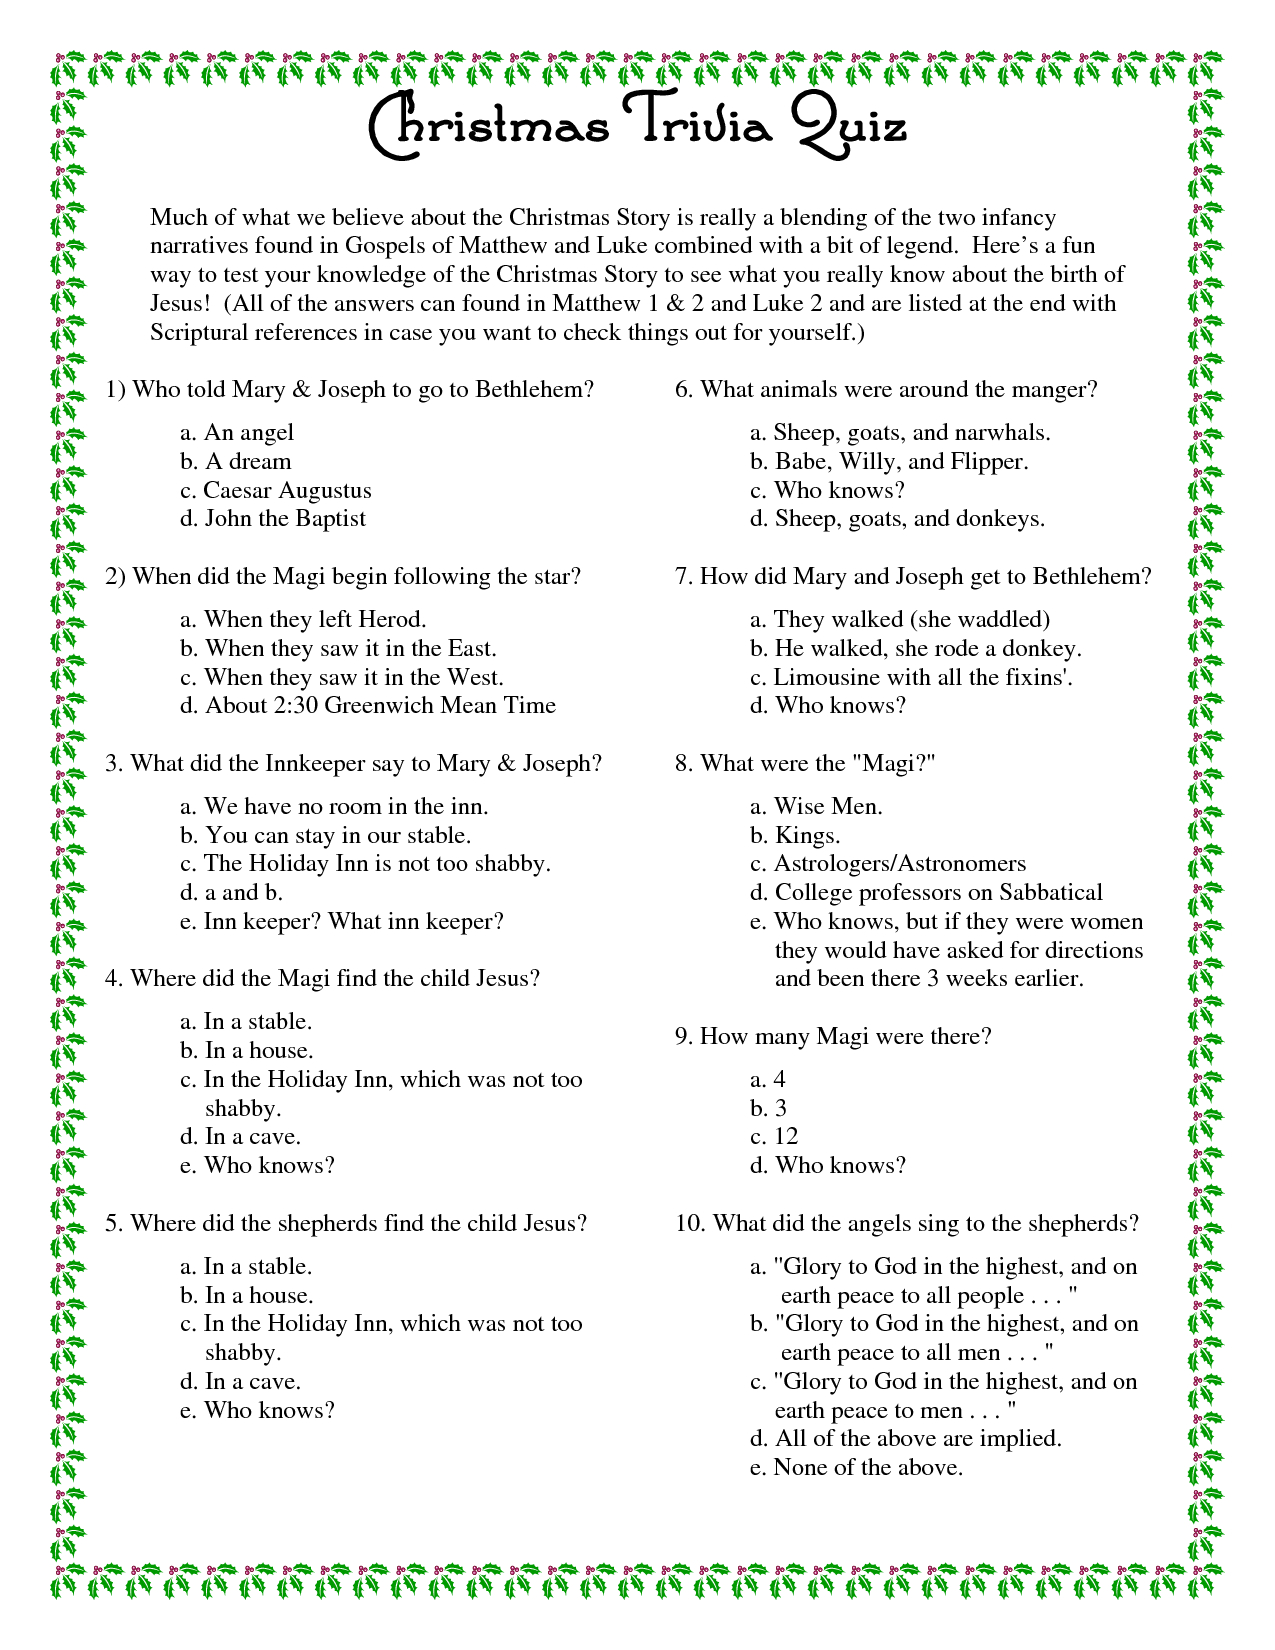 Printable+Christmas+Trivia+Questions+And+Answers | Christmas - Free Printable Trivia Questions And Answers